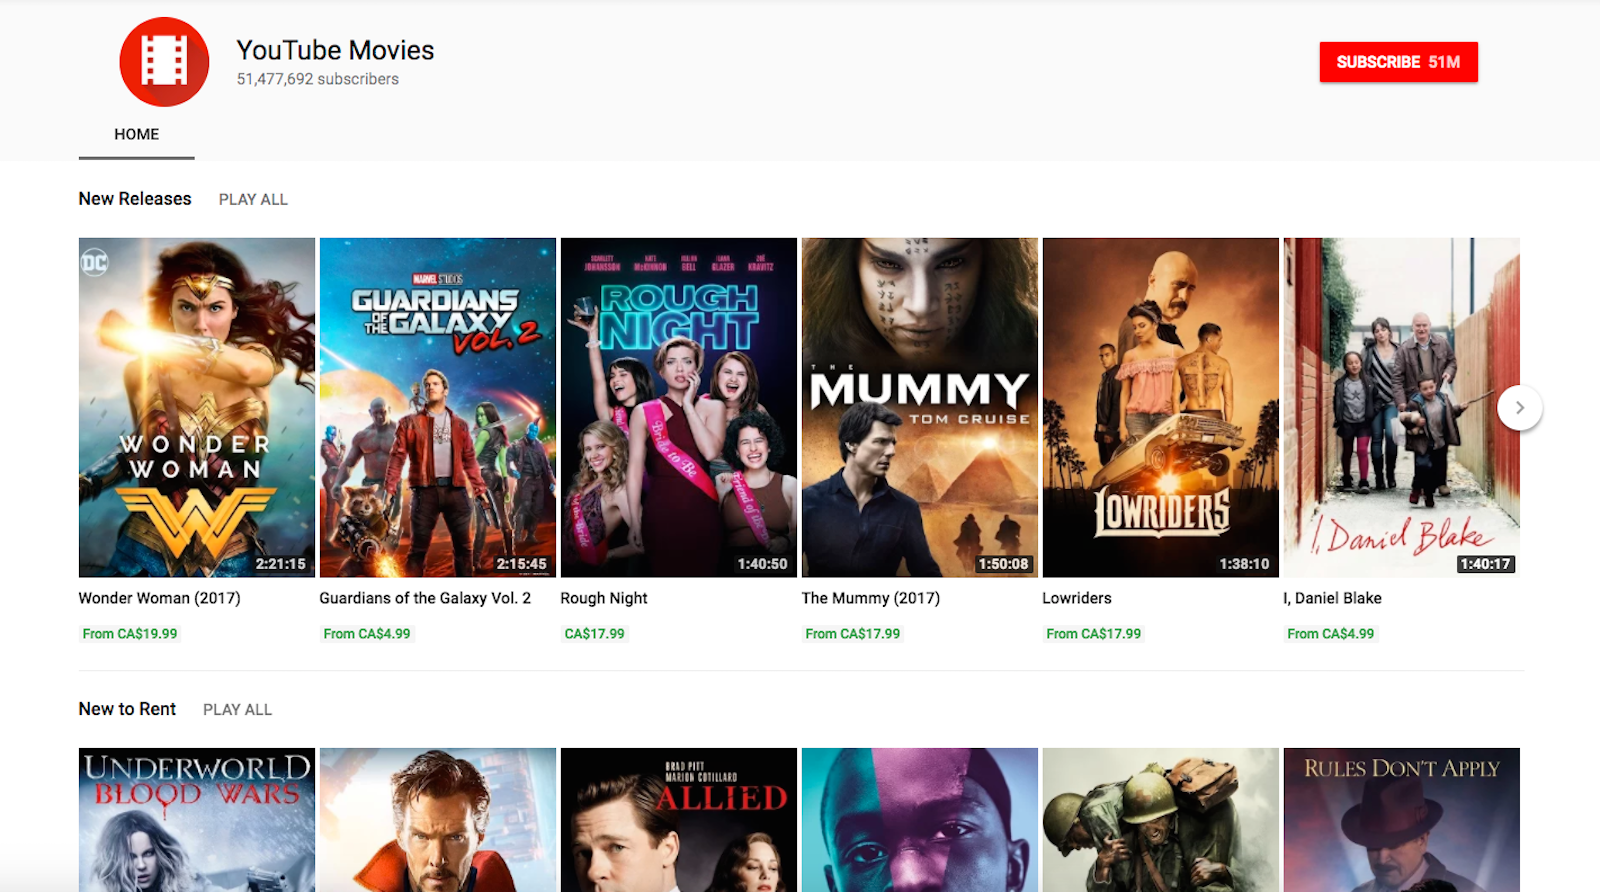 YouTube Movies main Home page